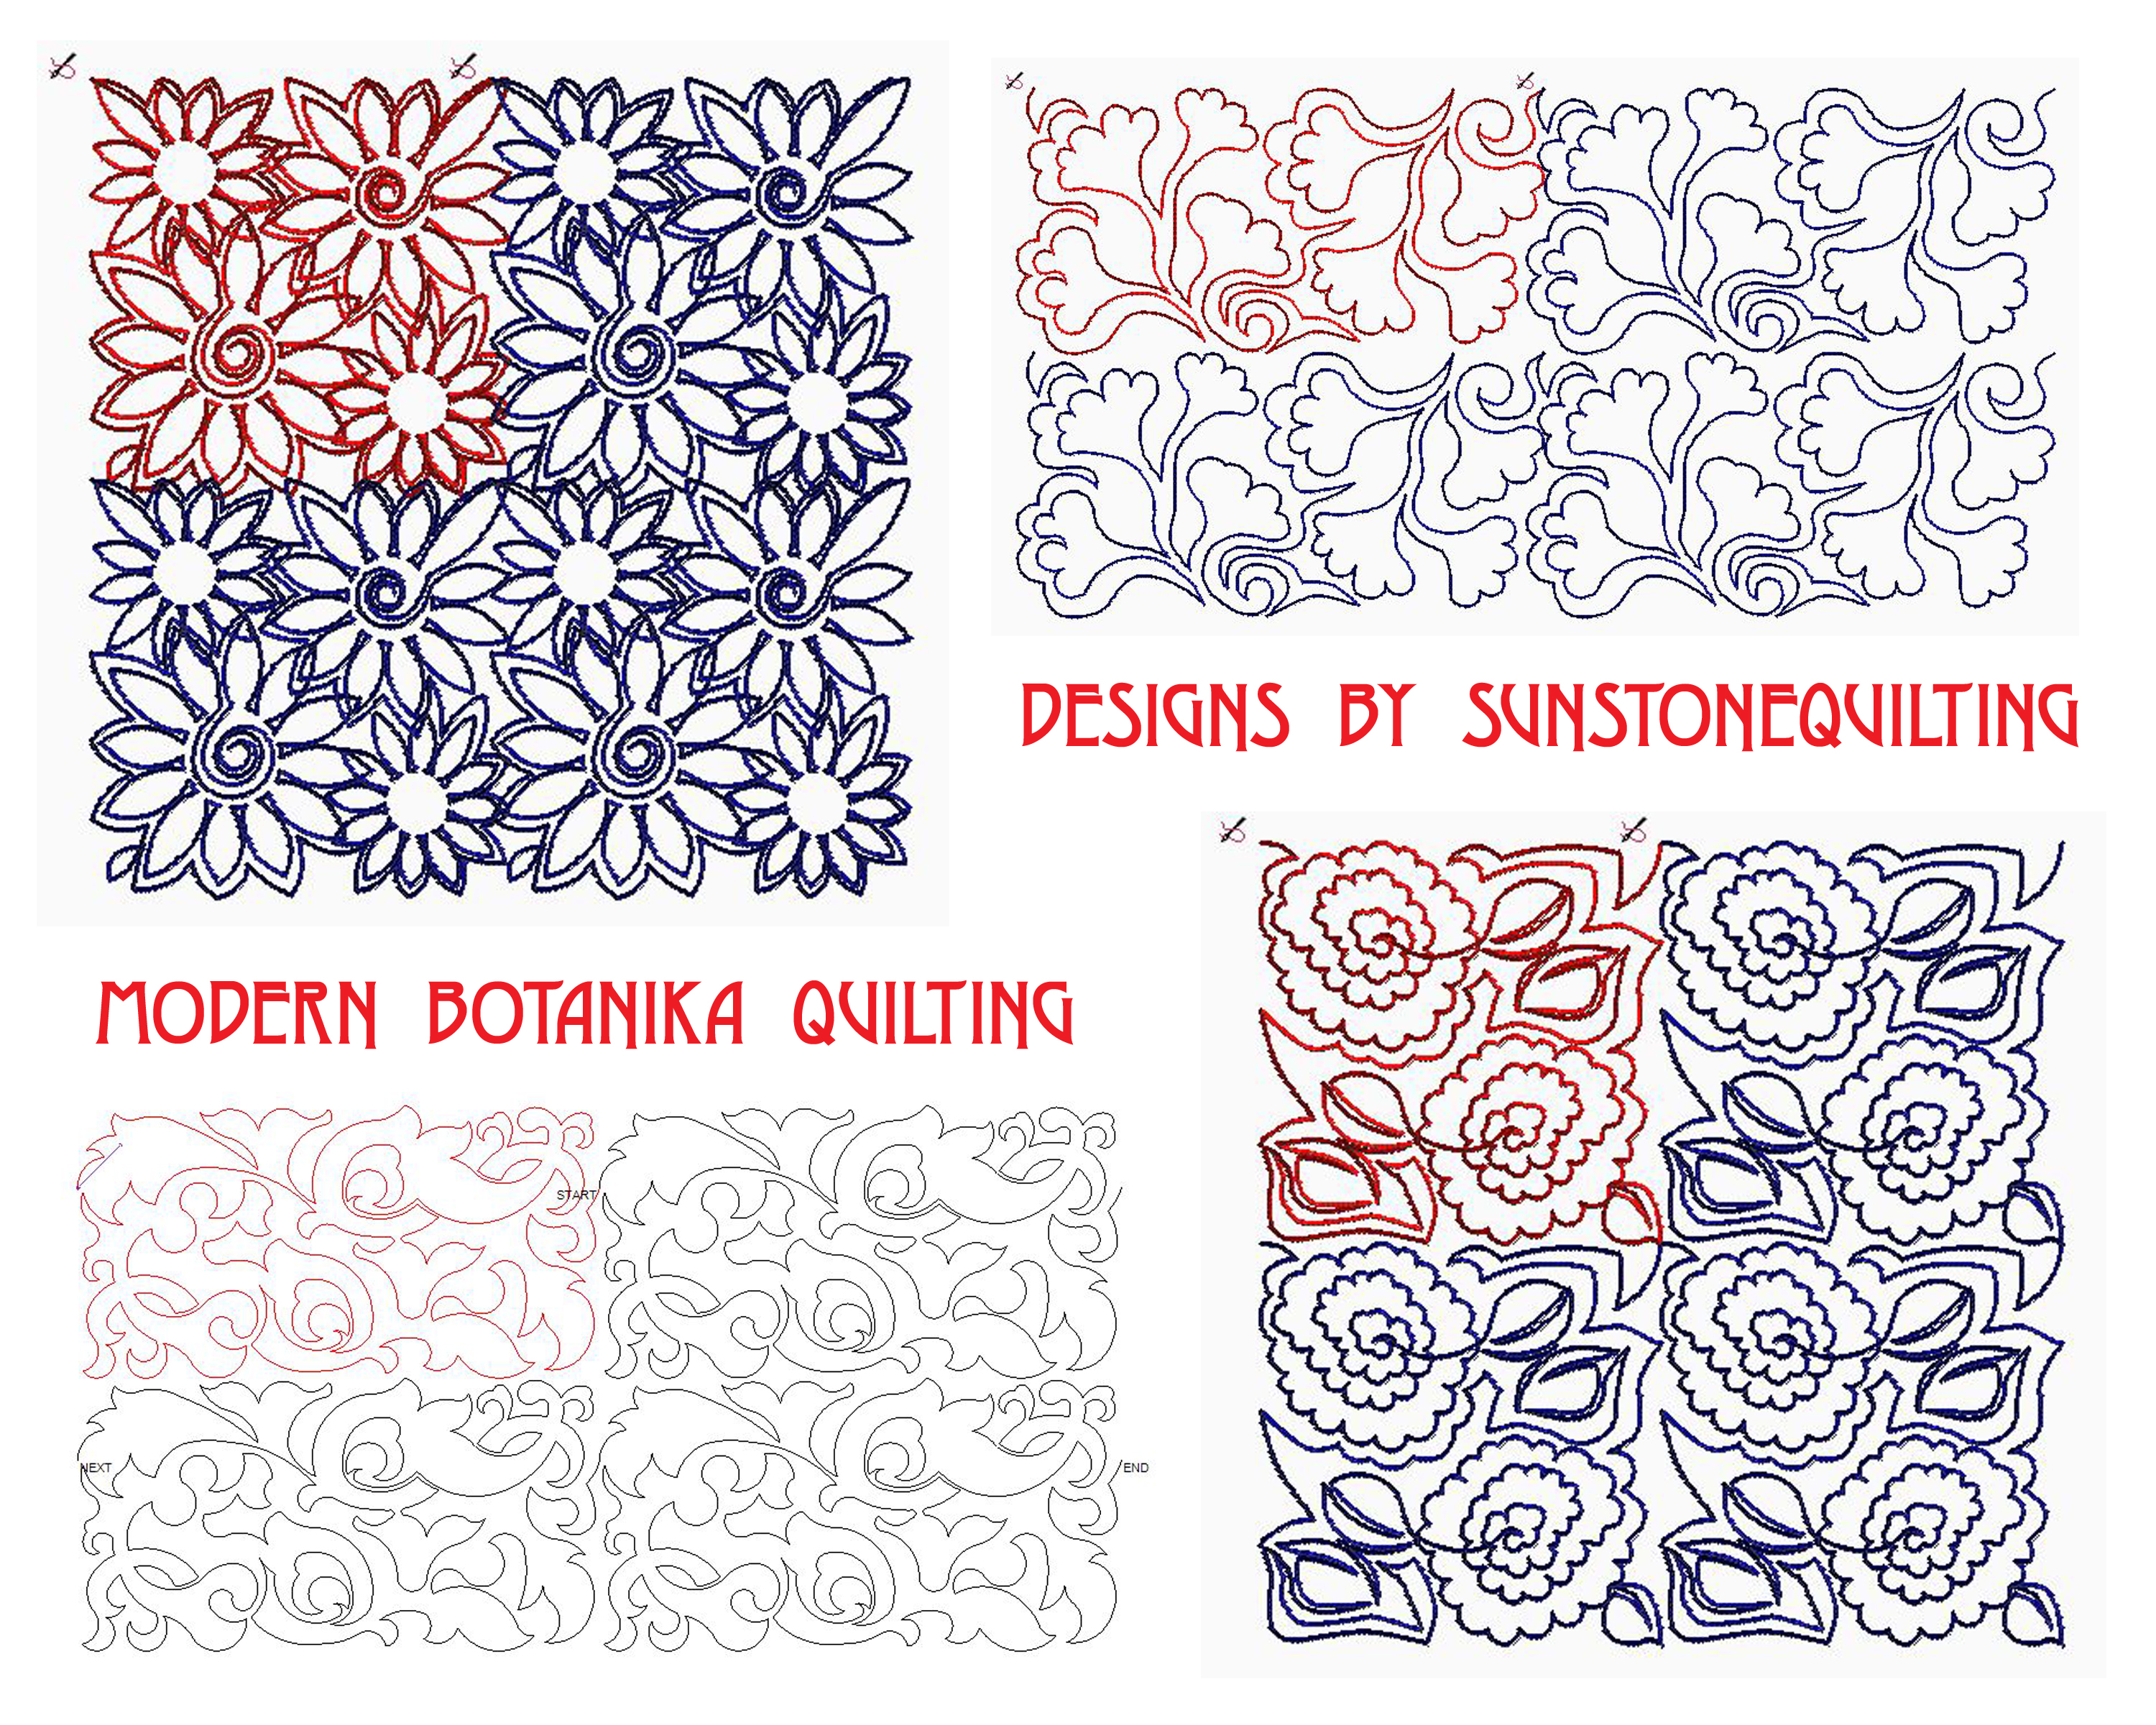 Digital Designs For Longarm Quilting : New digital designs for longarm quilters Sunstone Quilting